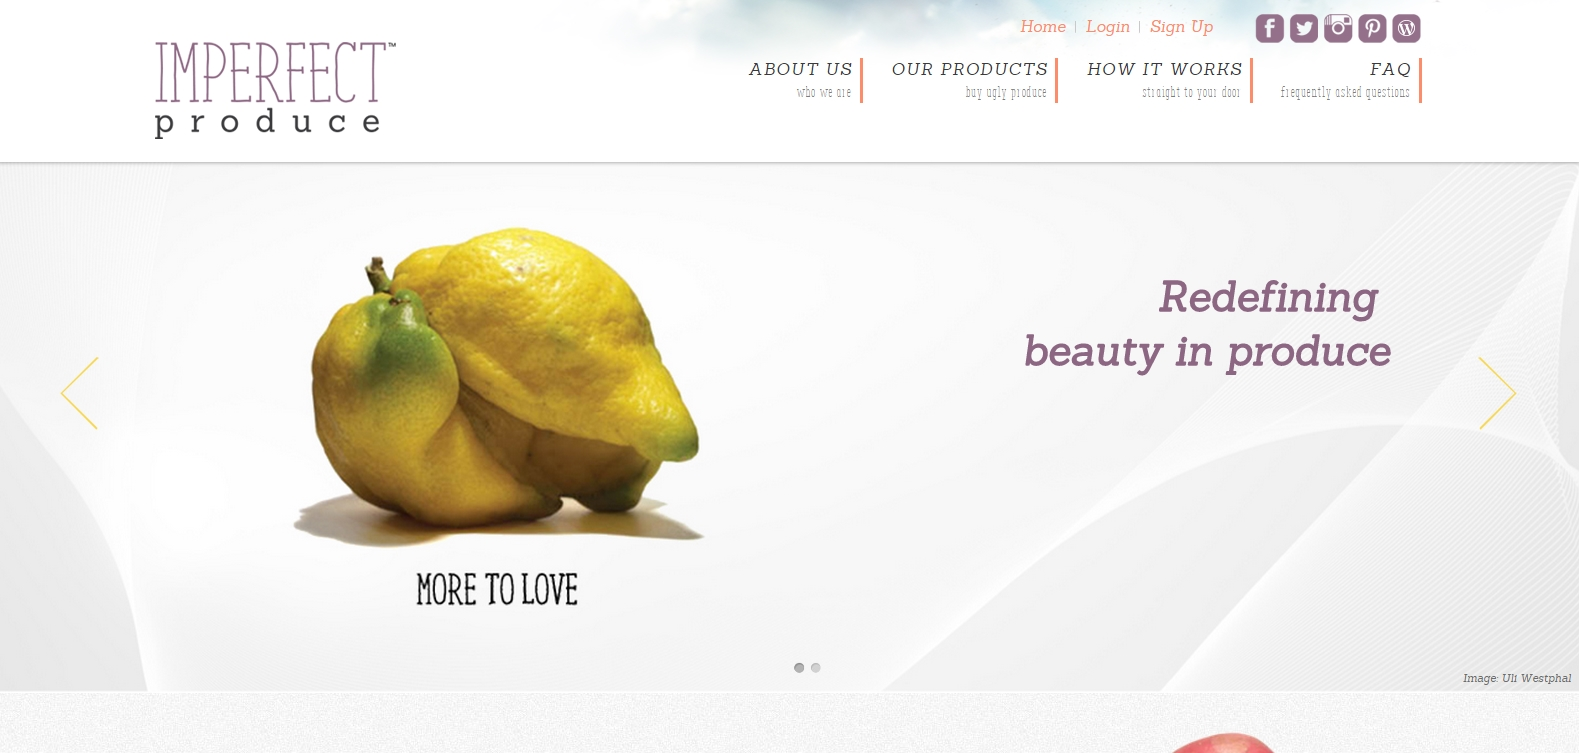 HazelBlog Article Banner: Industry Insider Interview: Roopam Lunia of ImperfectProduce.com